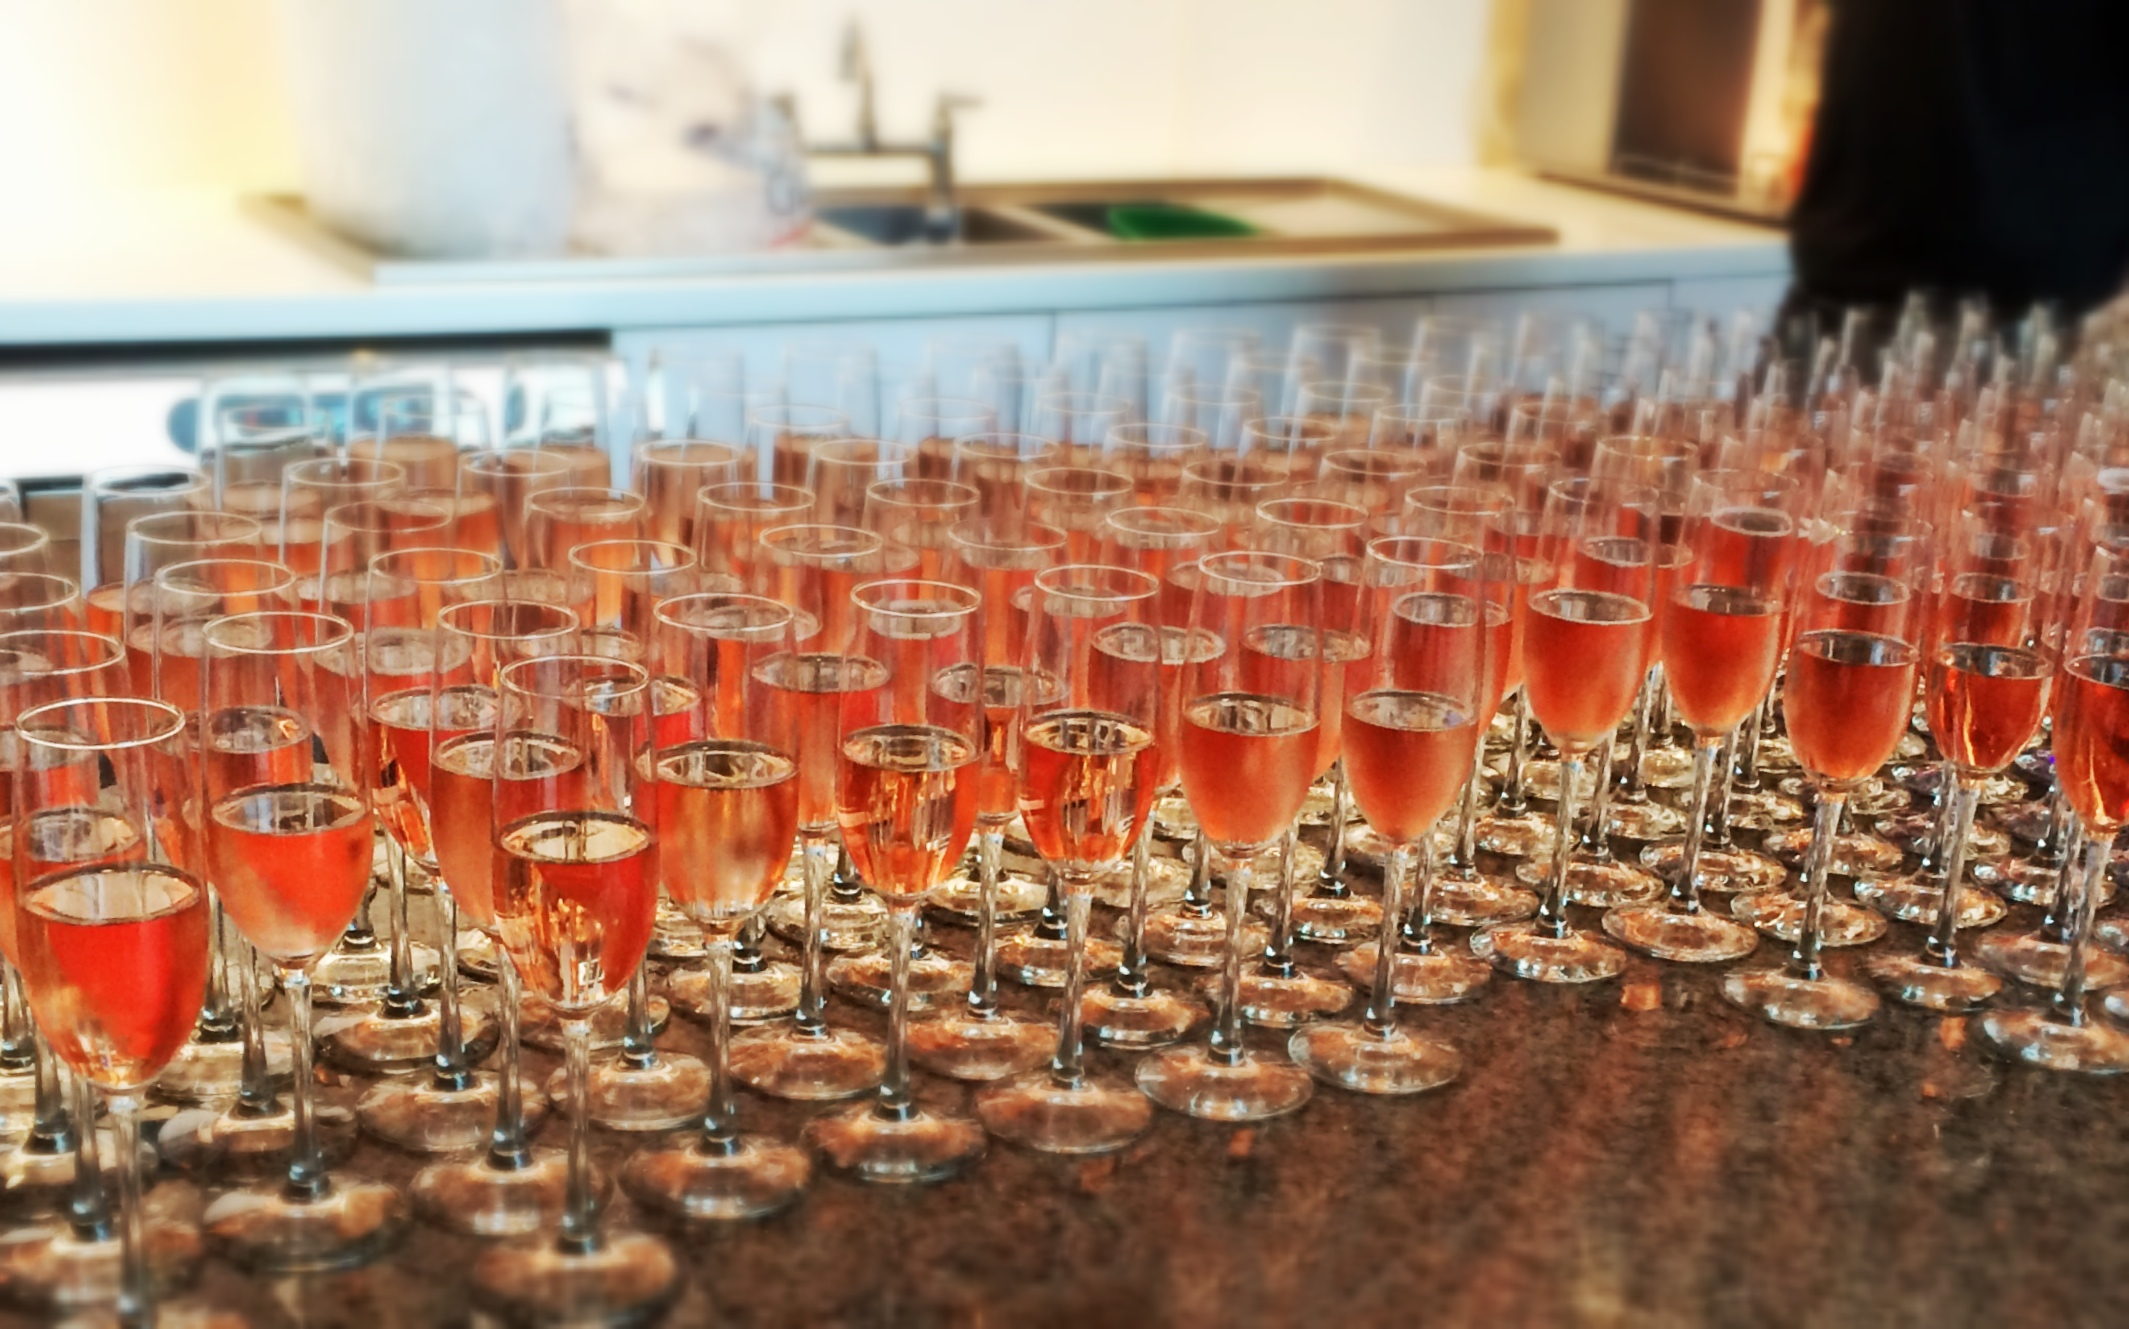 champagne for all!